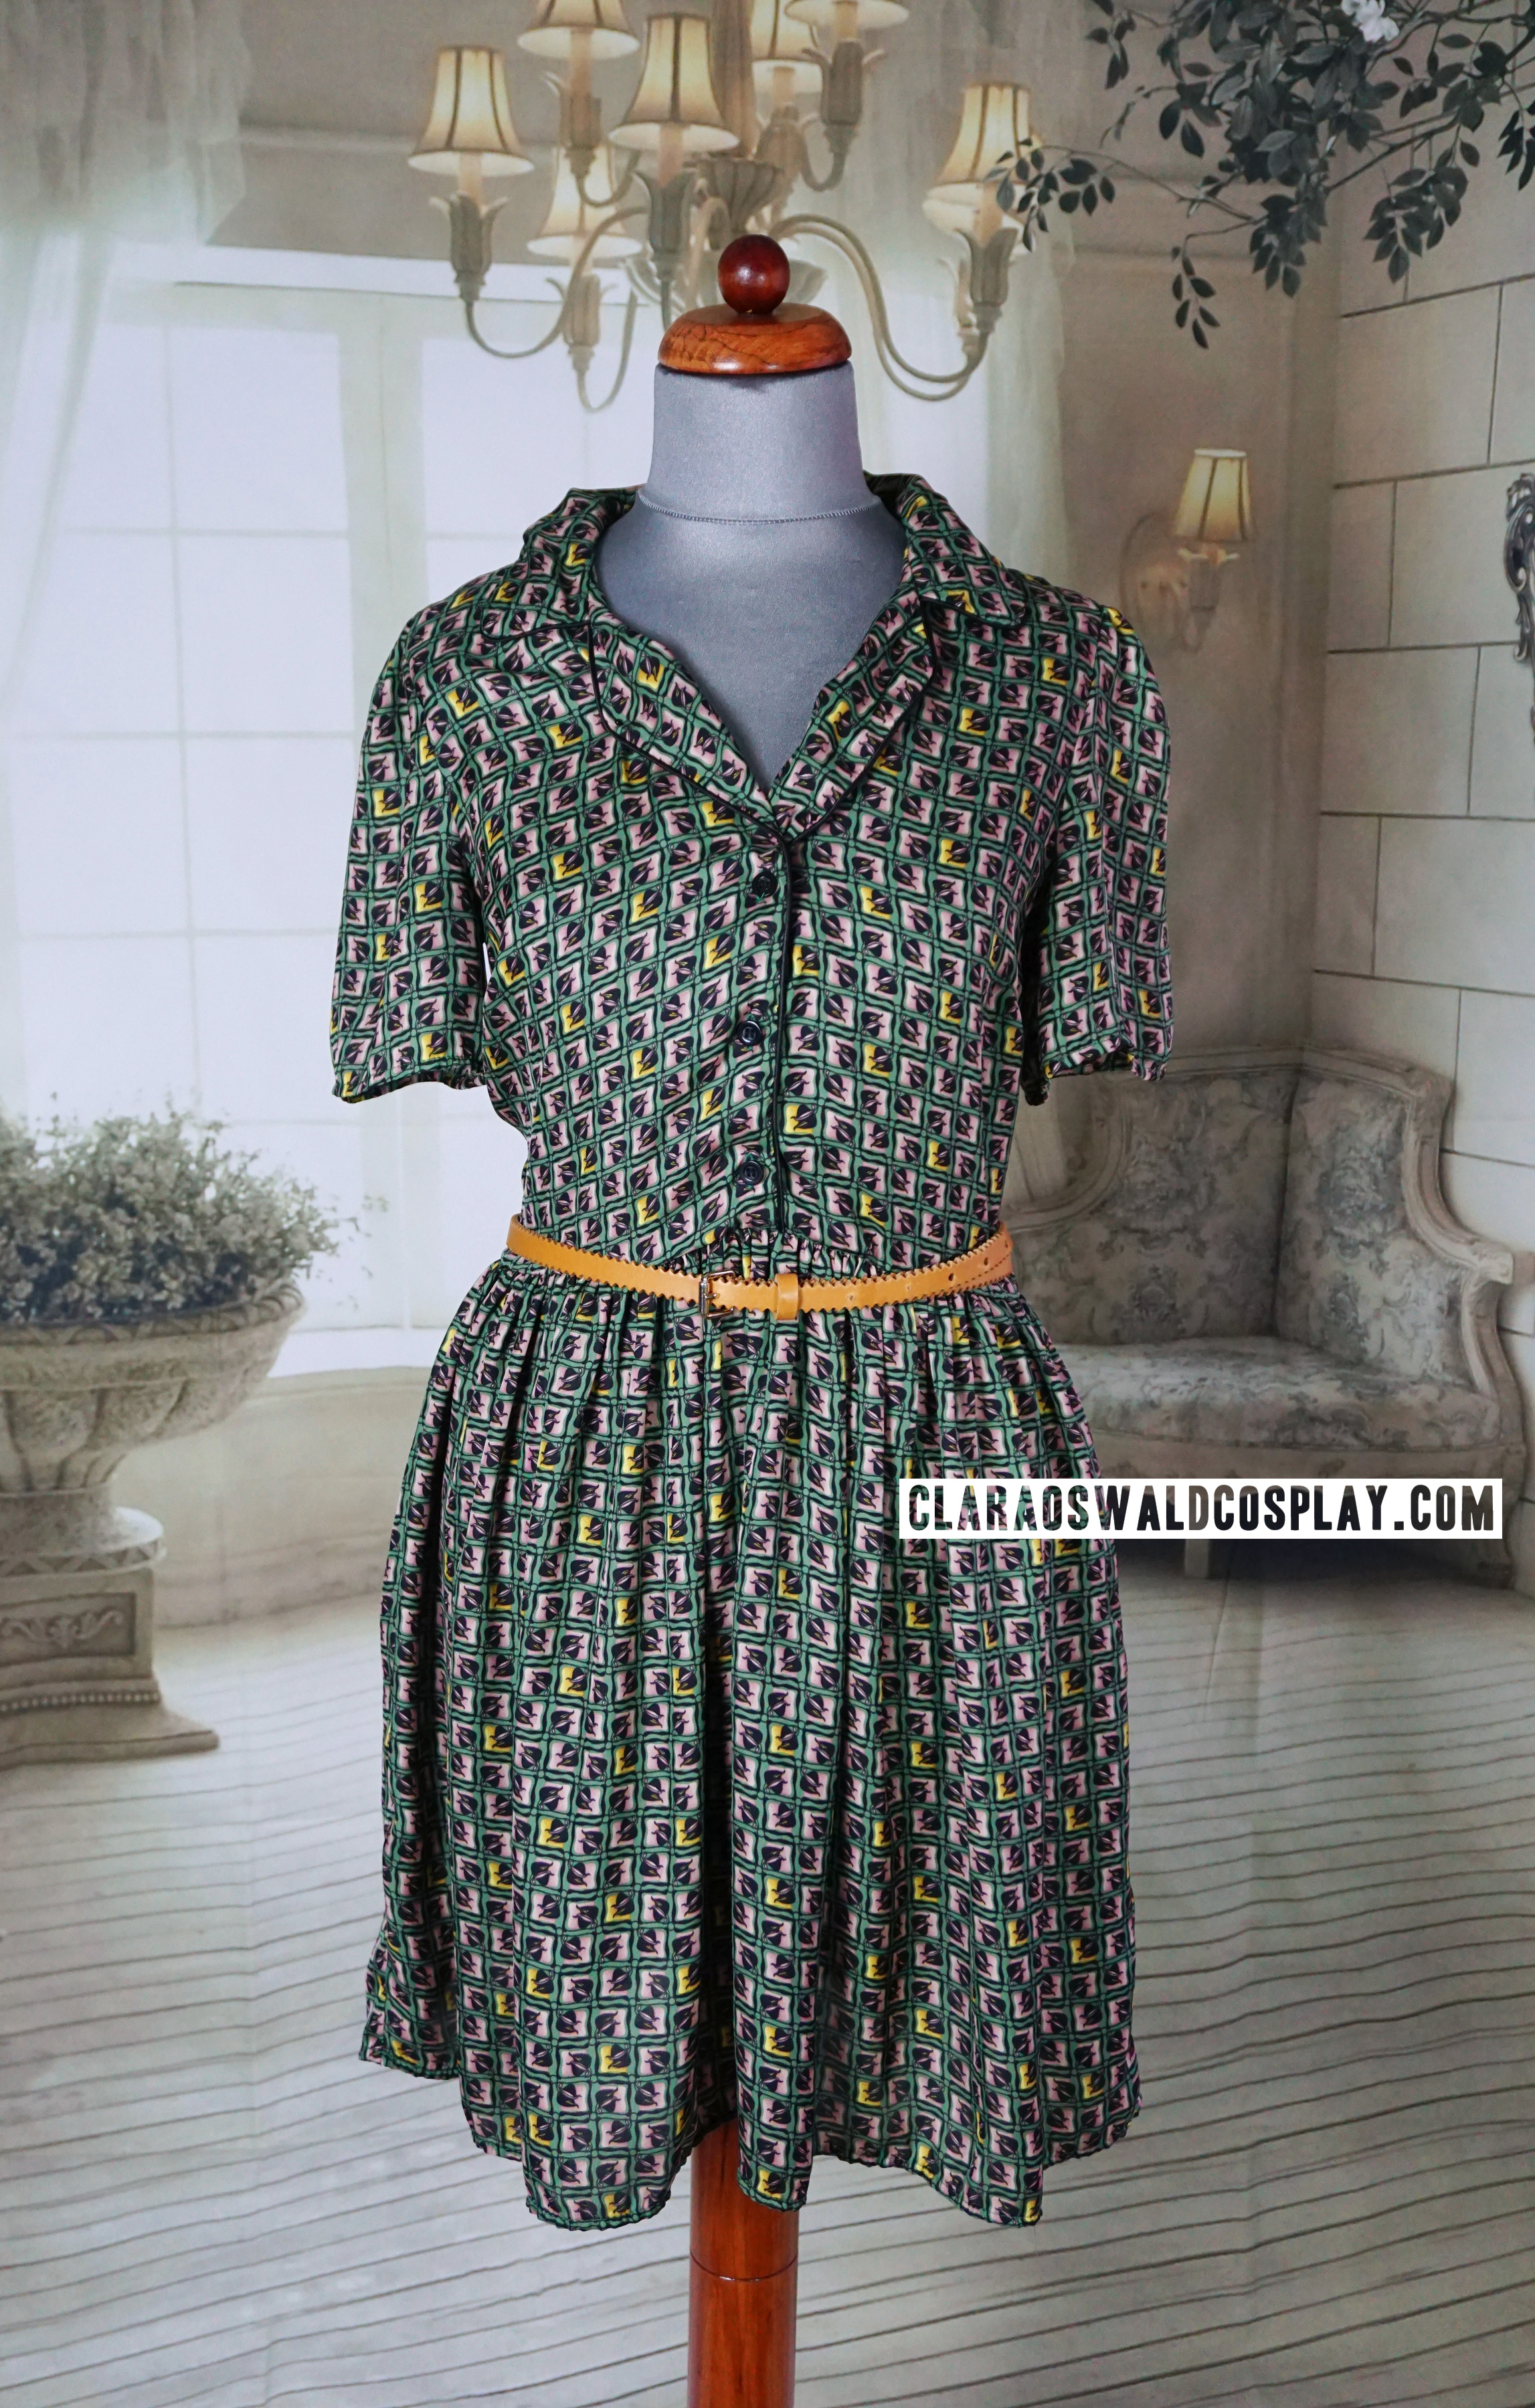 One of Clara Oswald's most iconic dresses is the Topshop Pipe Tile Dress (green) that she wore during a promotional shoot, in The Caretaker and Dark Water